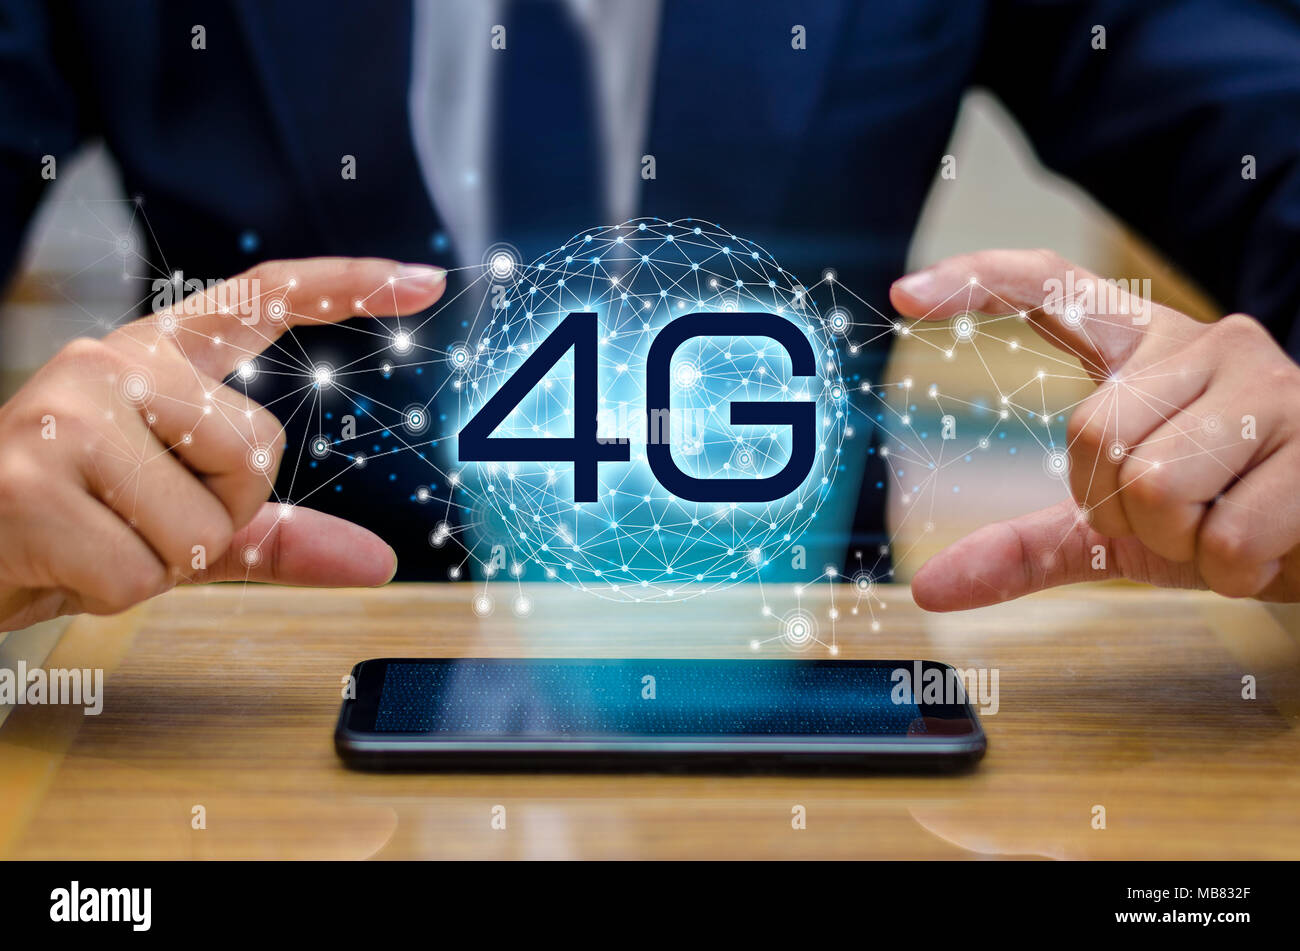 phone 4g Earth businessman connect worldwide waiter hand holding an empty digital tablet with smart and 4G network connection concept - Stock Image